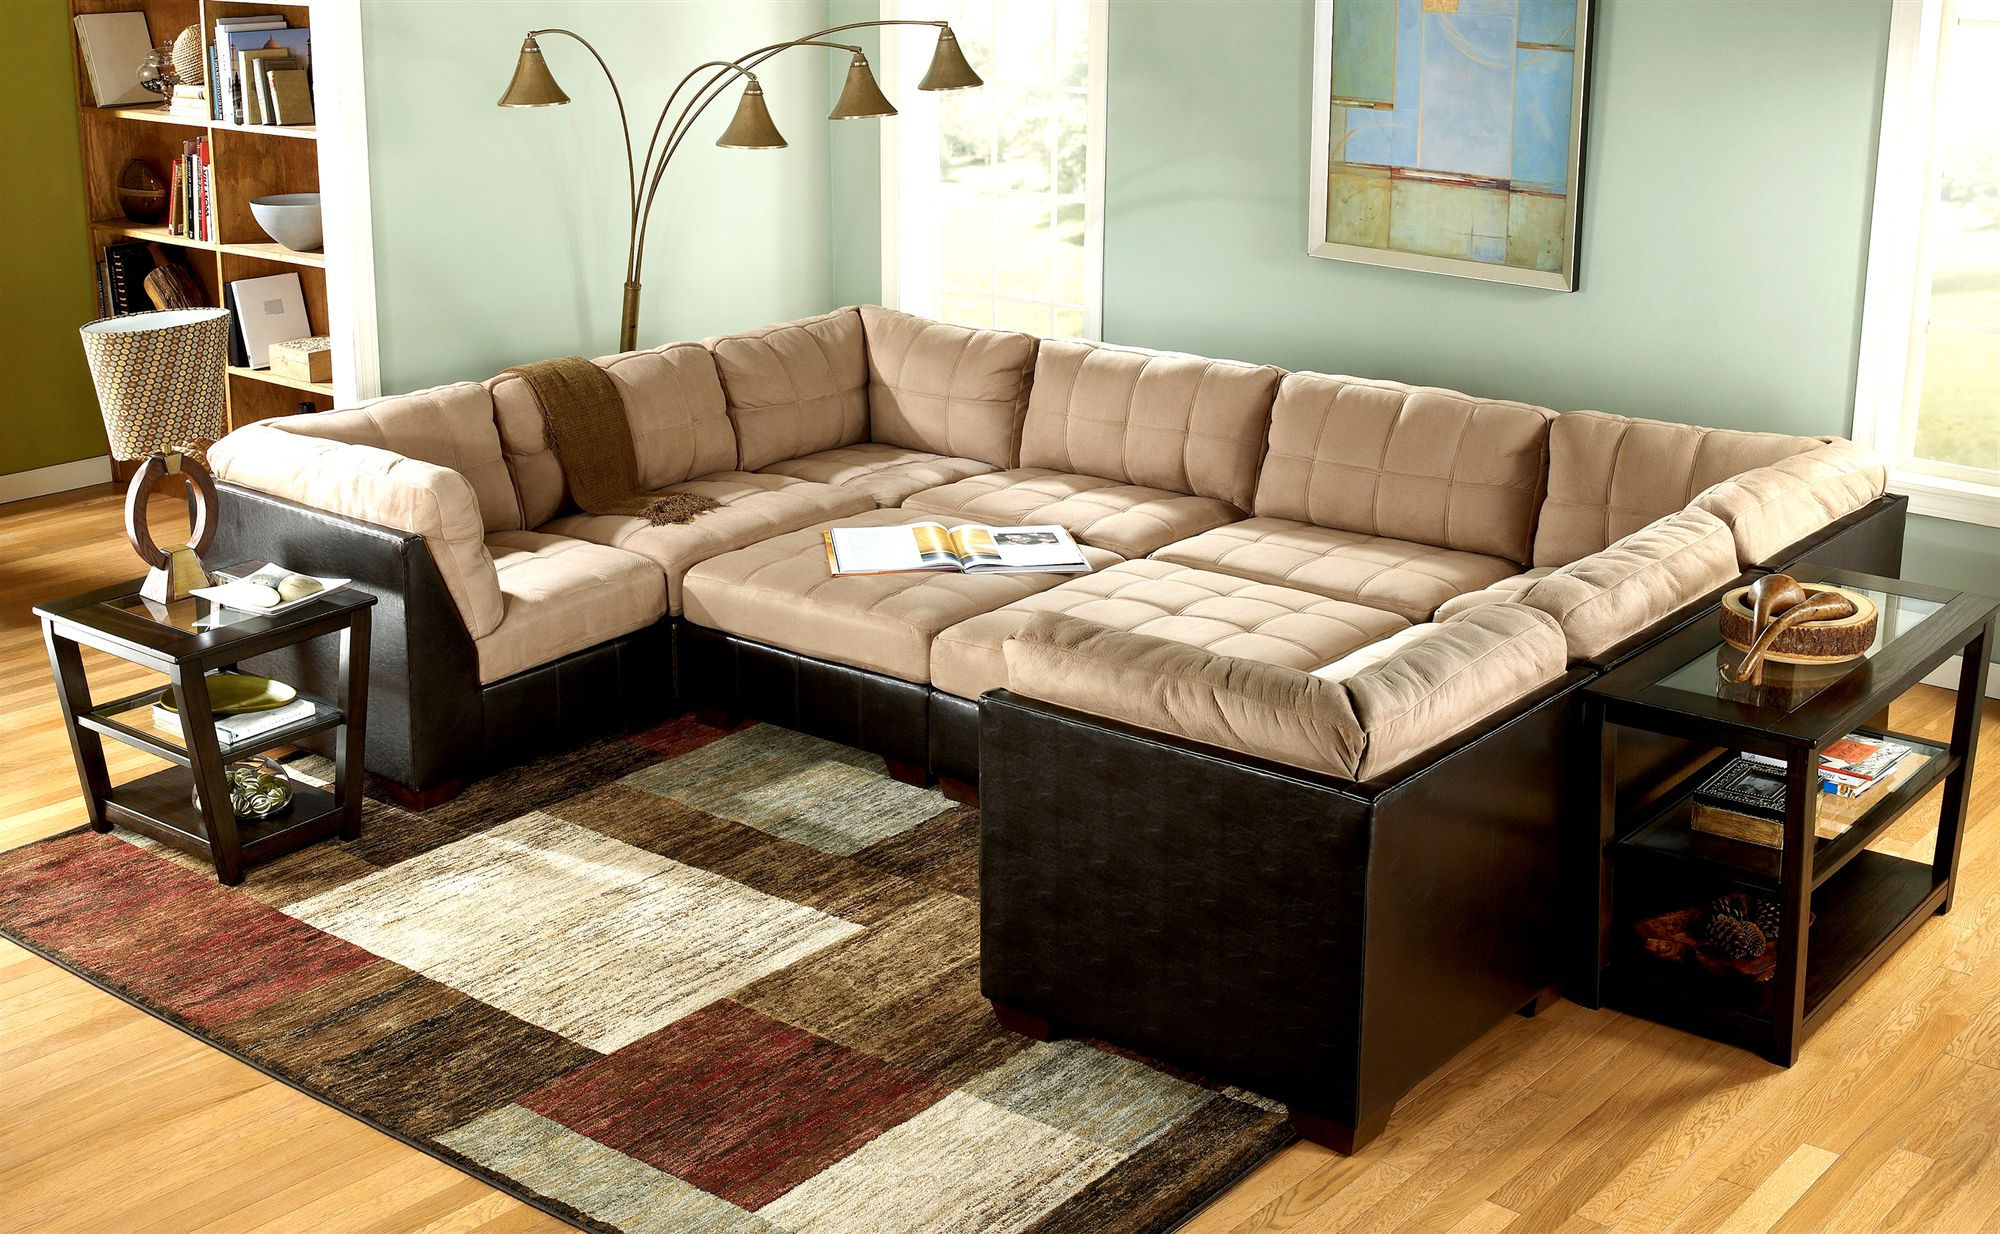 Living room ideas with sectionals sofa for small living Modern living room furniture ideas